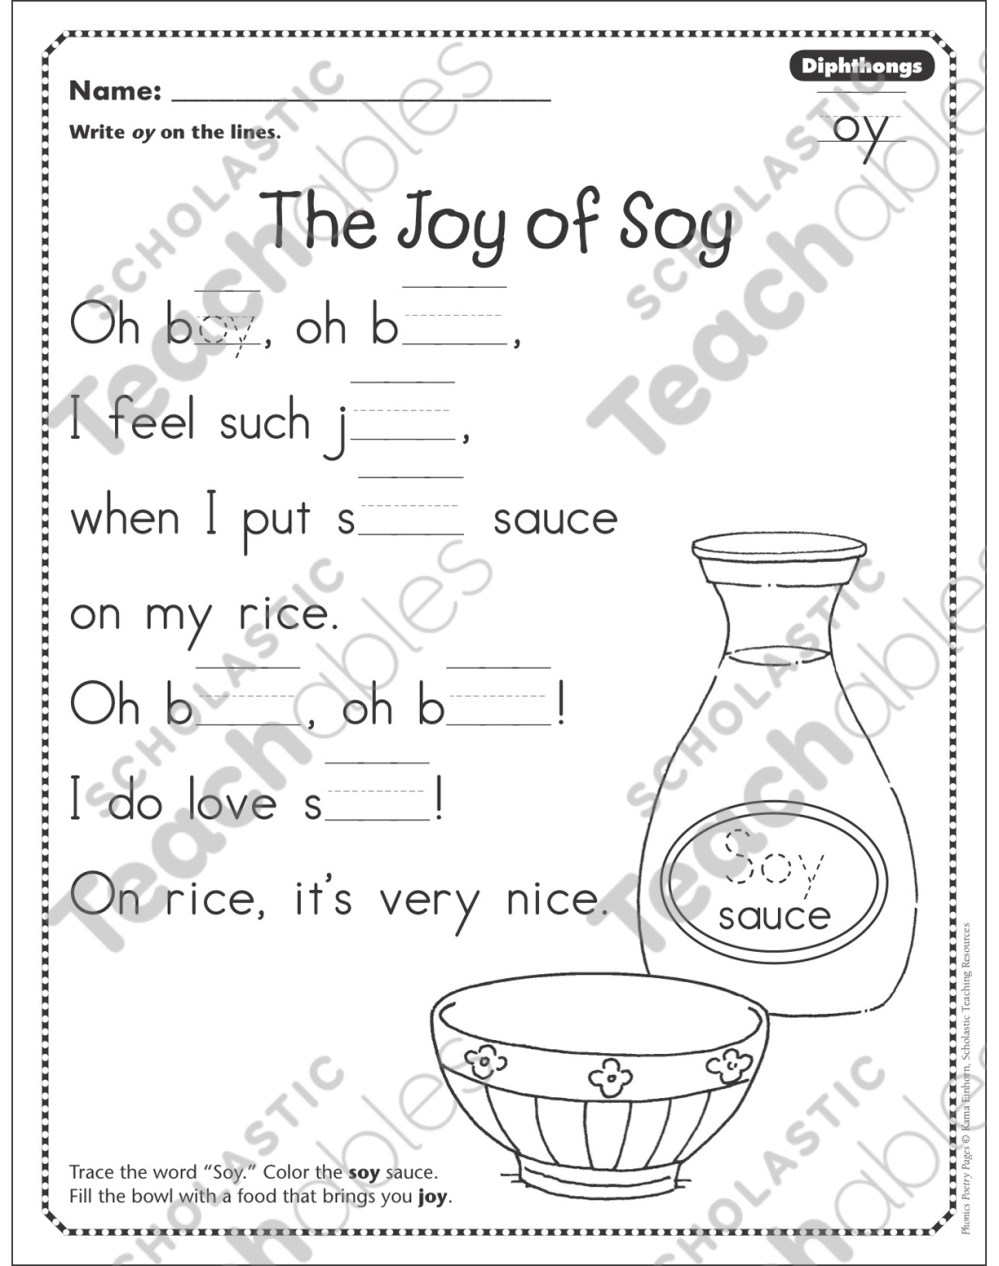 medium resolution of The Joy of Soy (Dipthongs - oy): Phonics Poetry Page   Printable Skills  Sheets